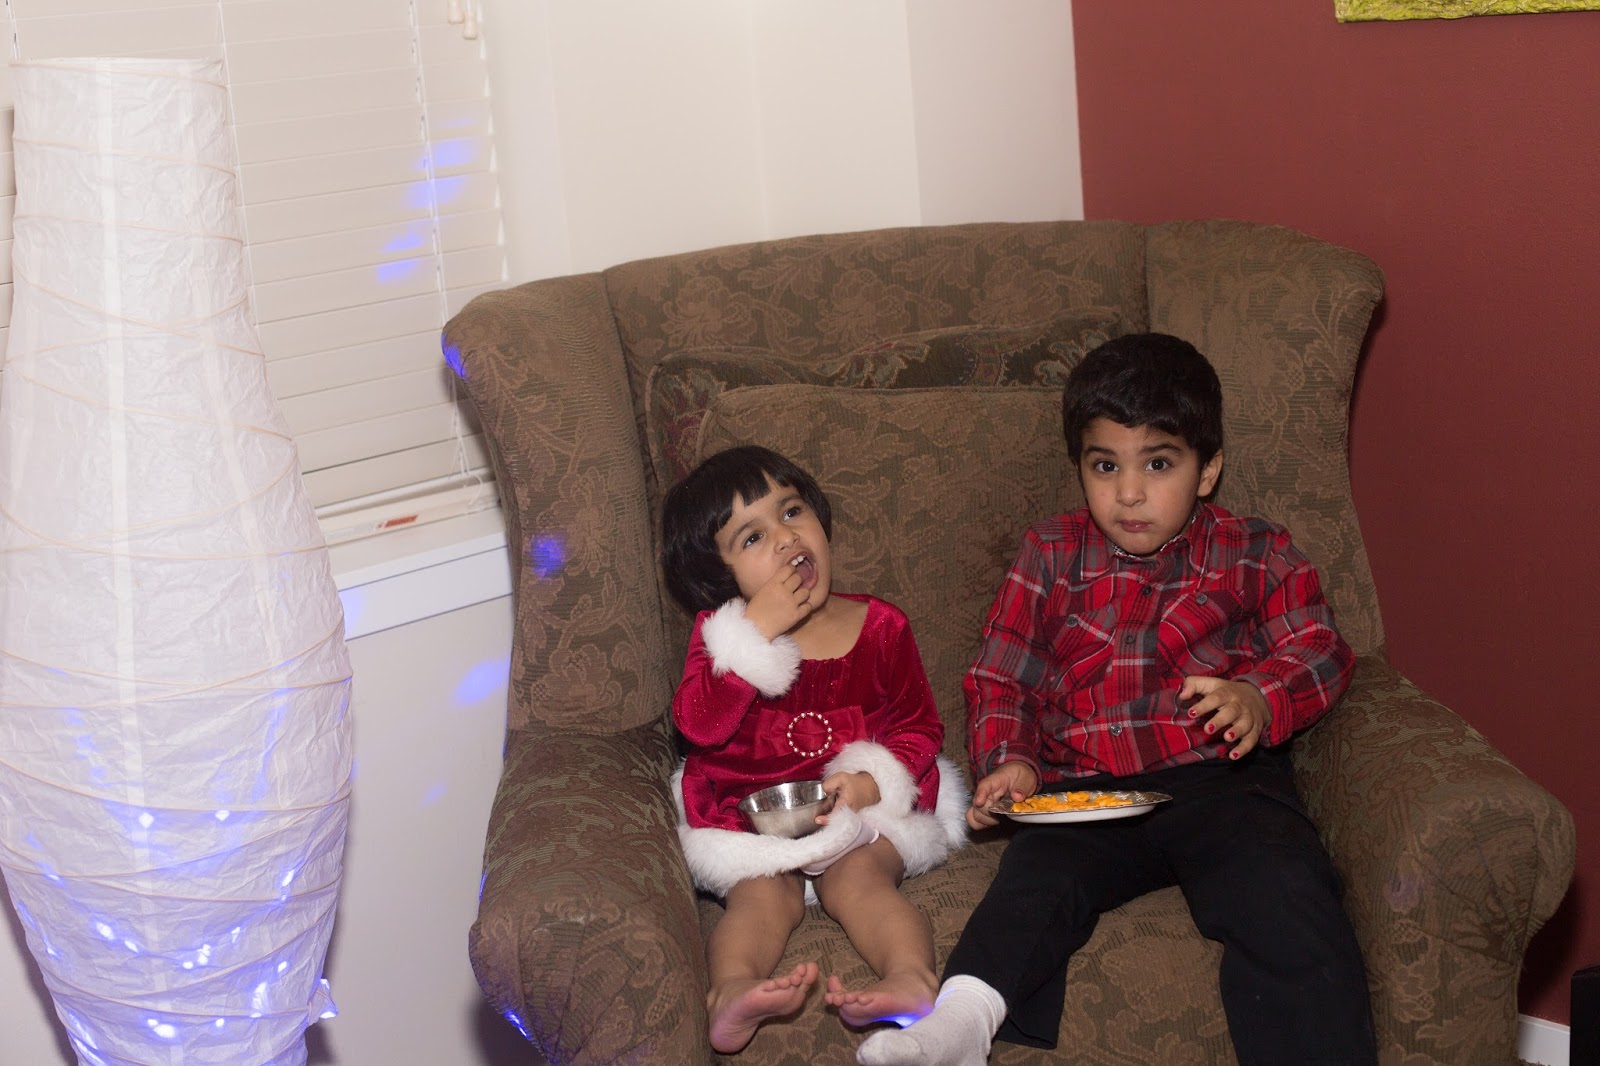 christmas party 2015, house parties, seattle parties, ananya in a party, kids in christmas attire